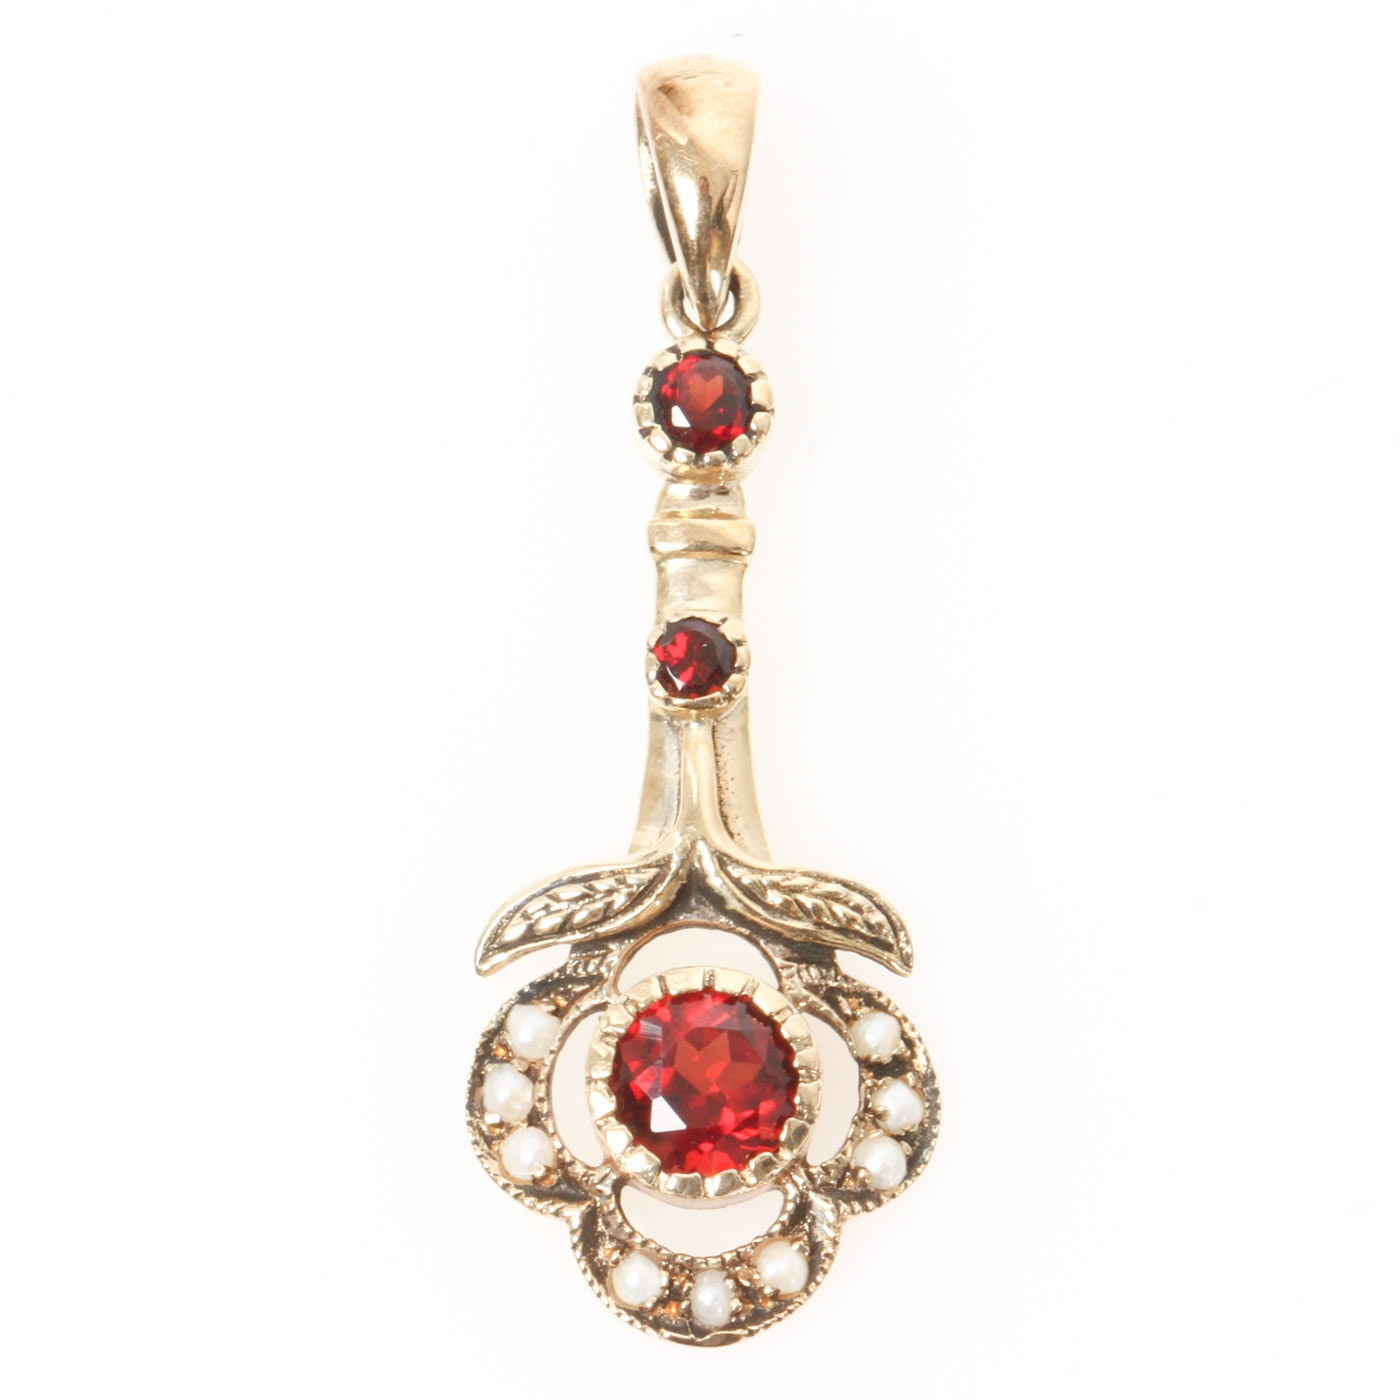 Victorian 10K Yellow Gold, Garnet, and Seed Pearl Drop Pendant